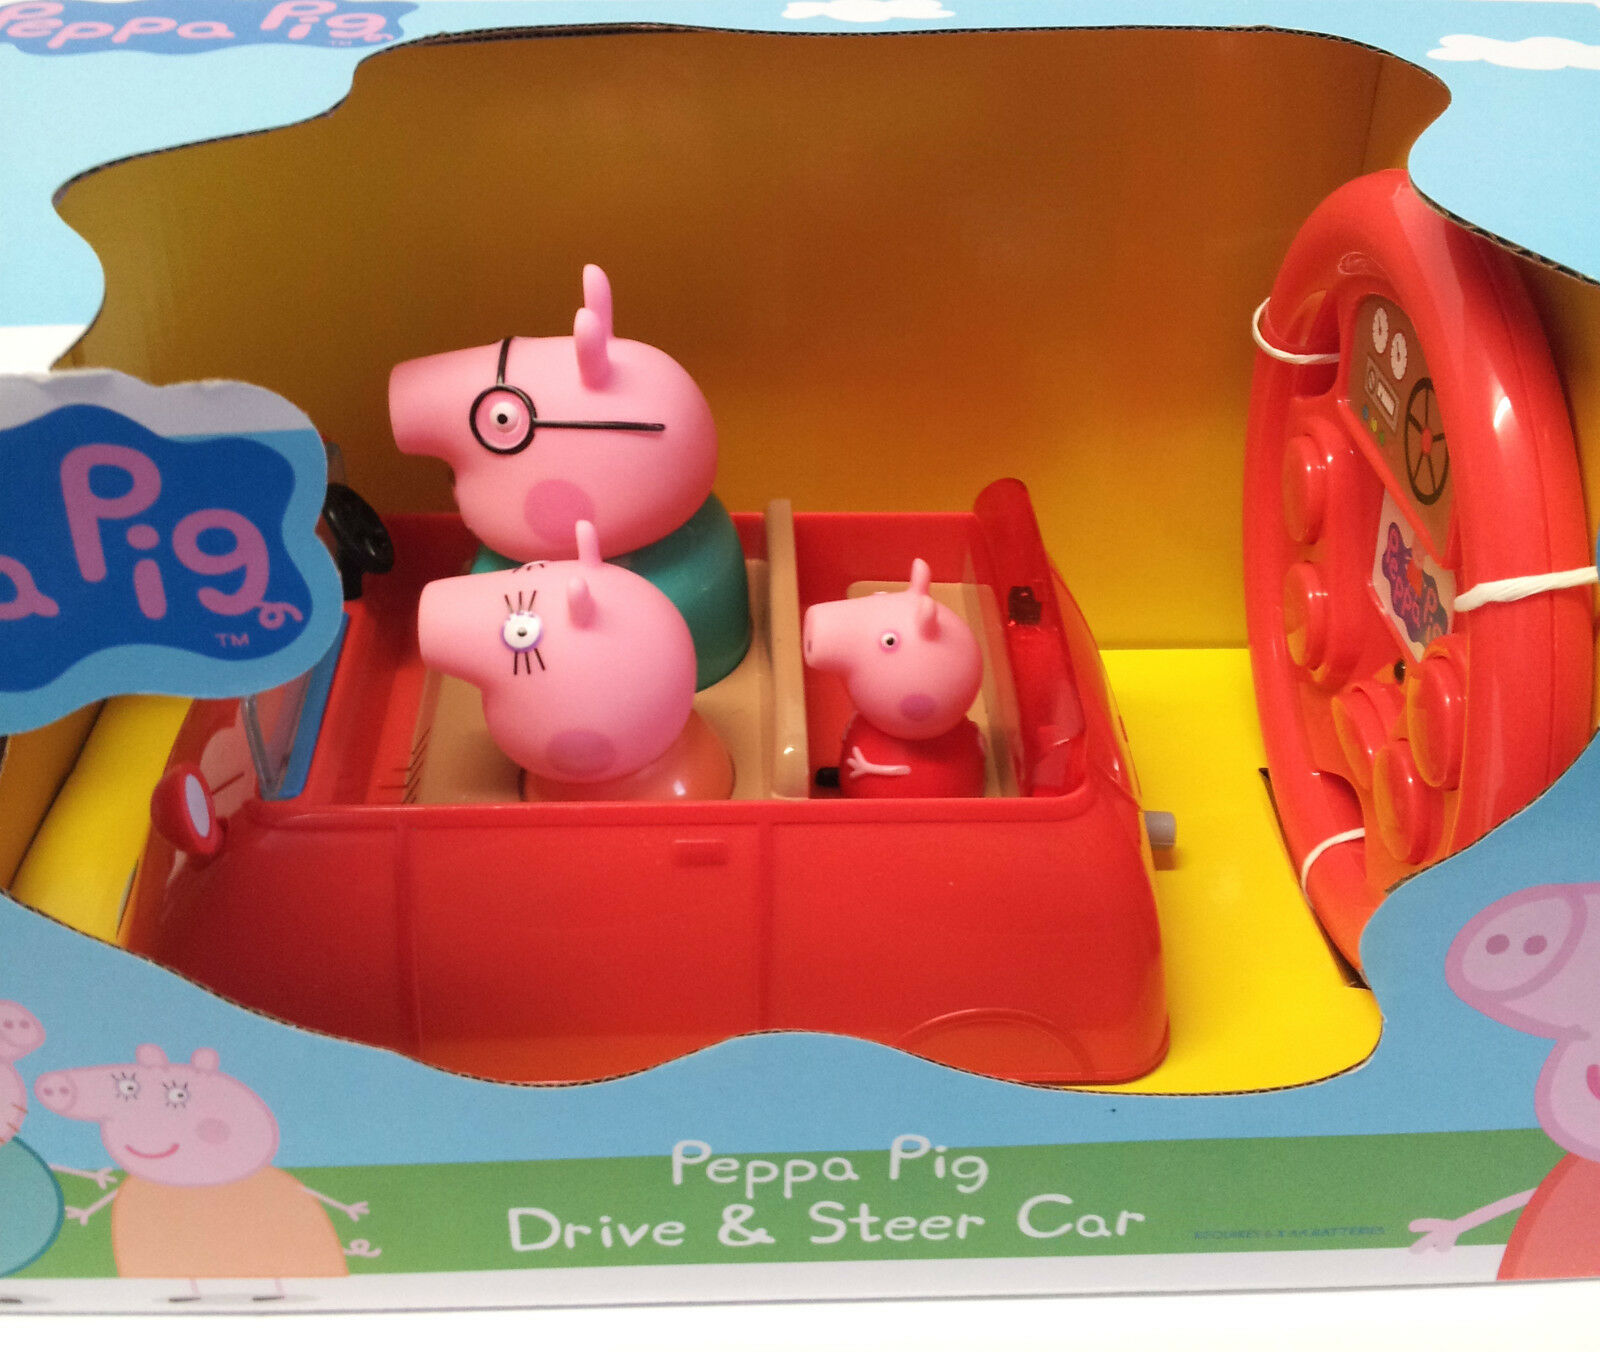 peppa pig drive steer car remote control car age 18m purchase today ebay. Black Bedroom Furniture Sets. Home Design Ideas